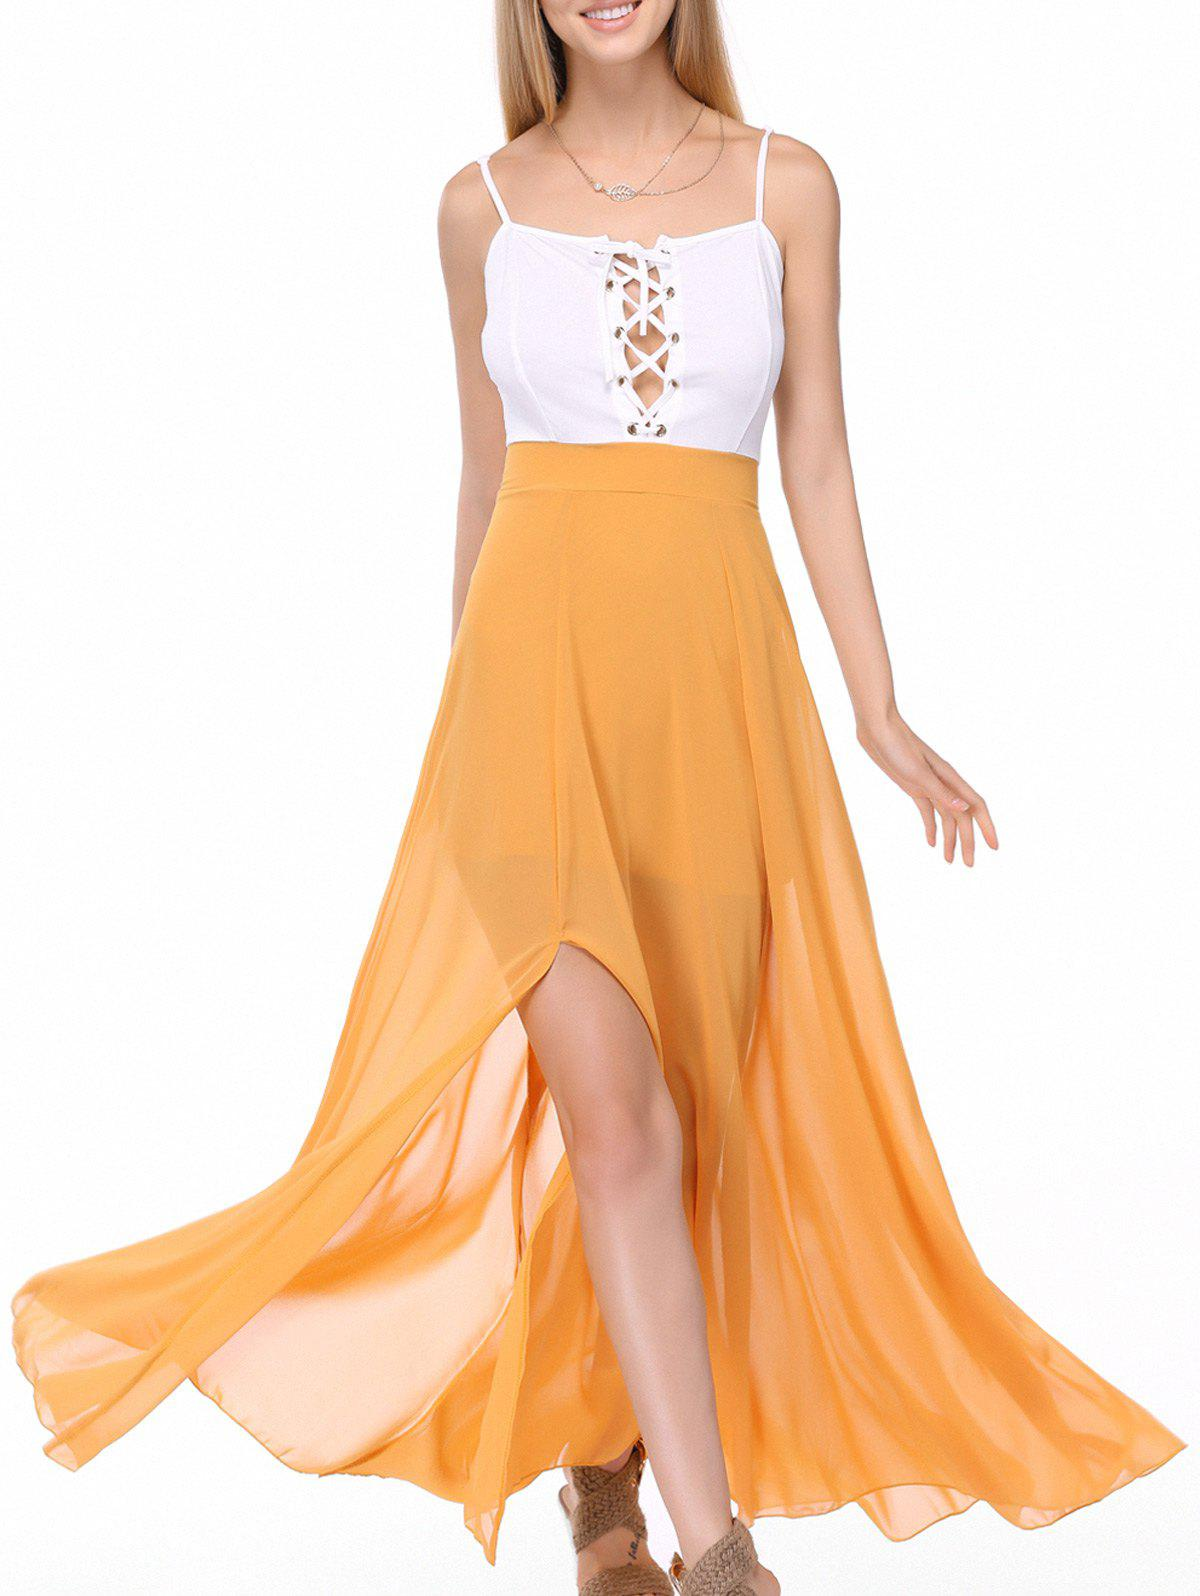 Alluring Spaghetti Straps Lace Up Slit Chiffon Dress For Women - WHITE/YELLOW XL